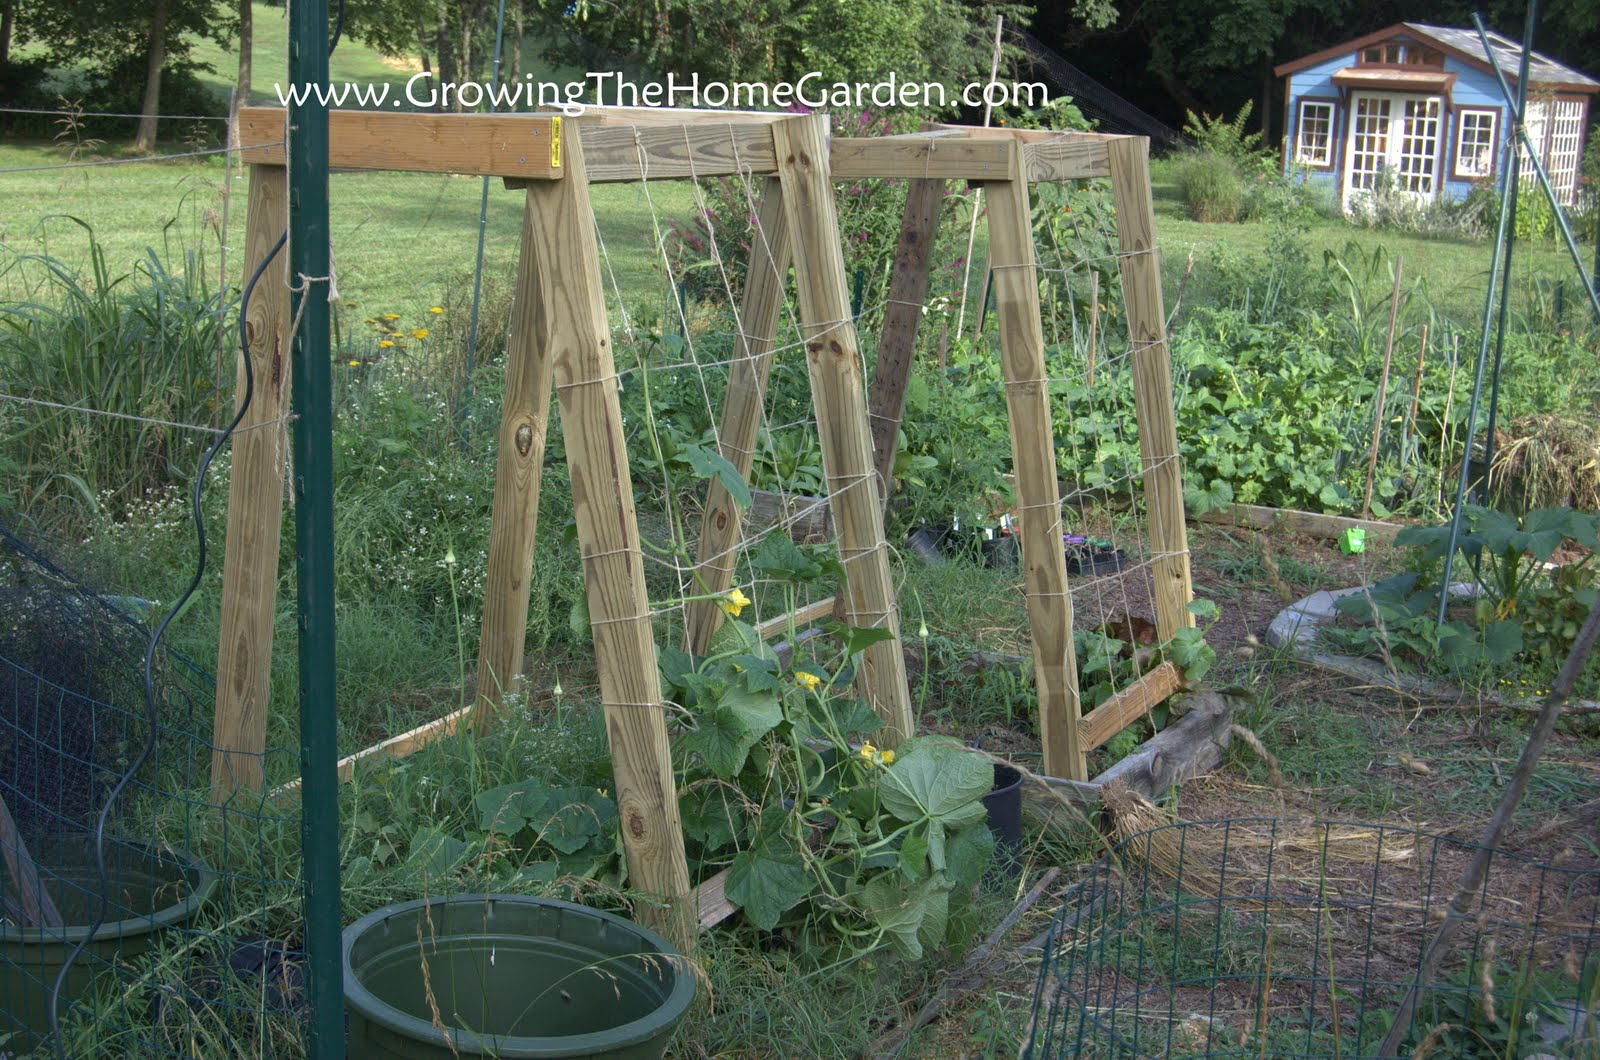 Homemade Cucumber or Melon Trellises - Growing The Home Garden